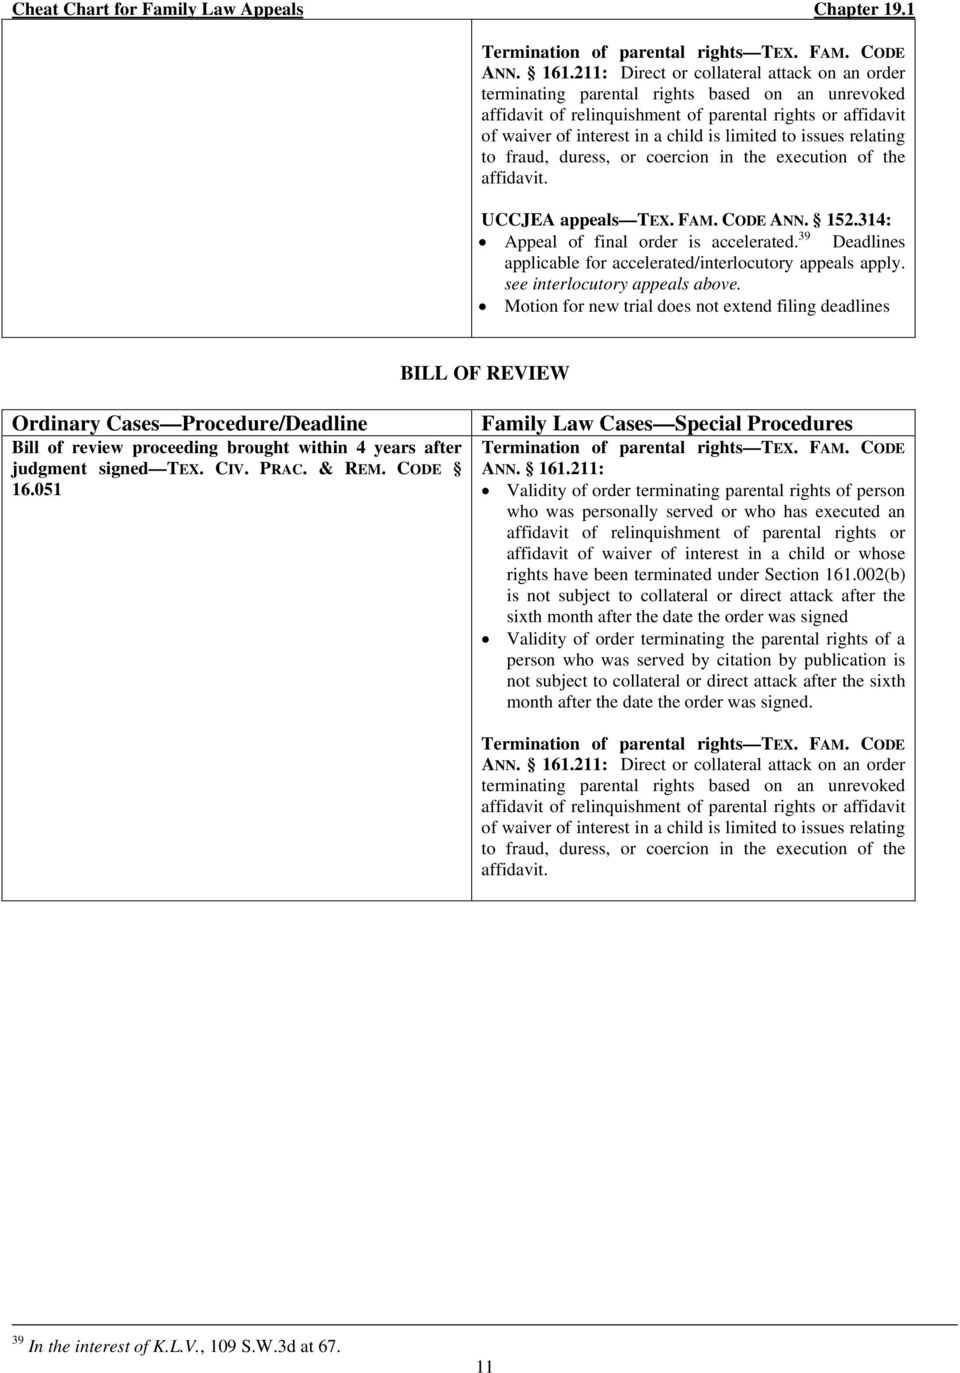 CHEAT CHART FOR FAMILY LAW APPEALS - PDF